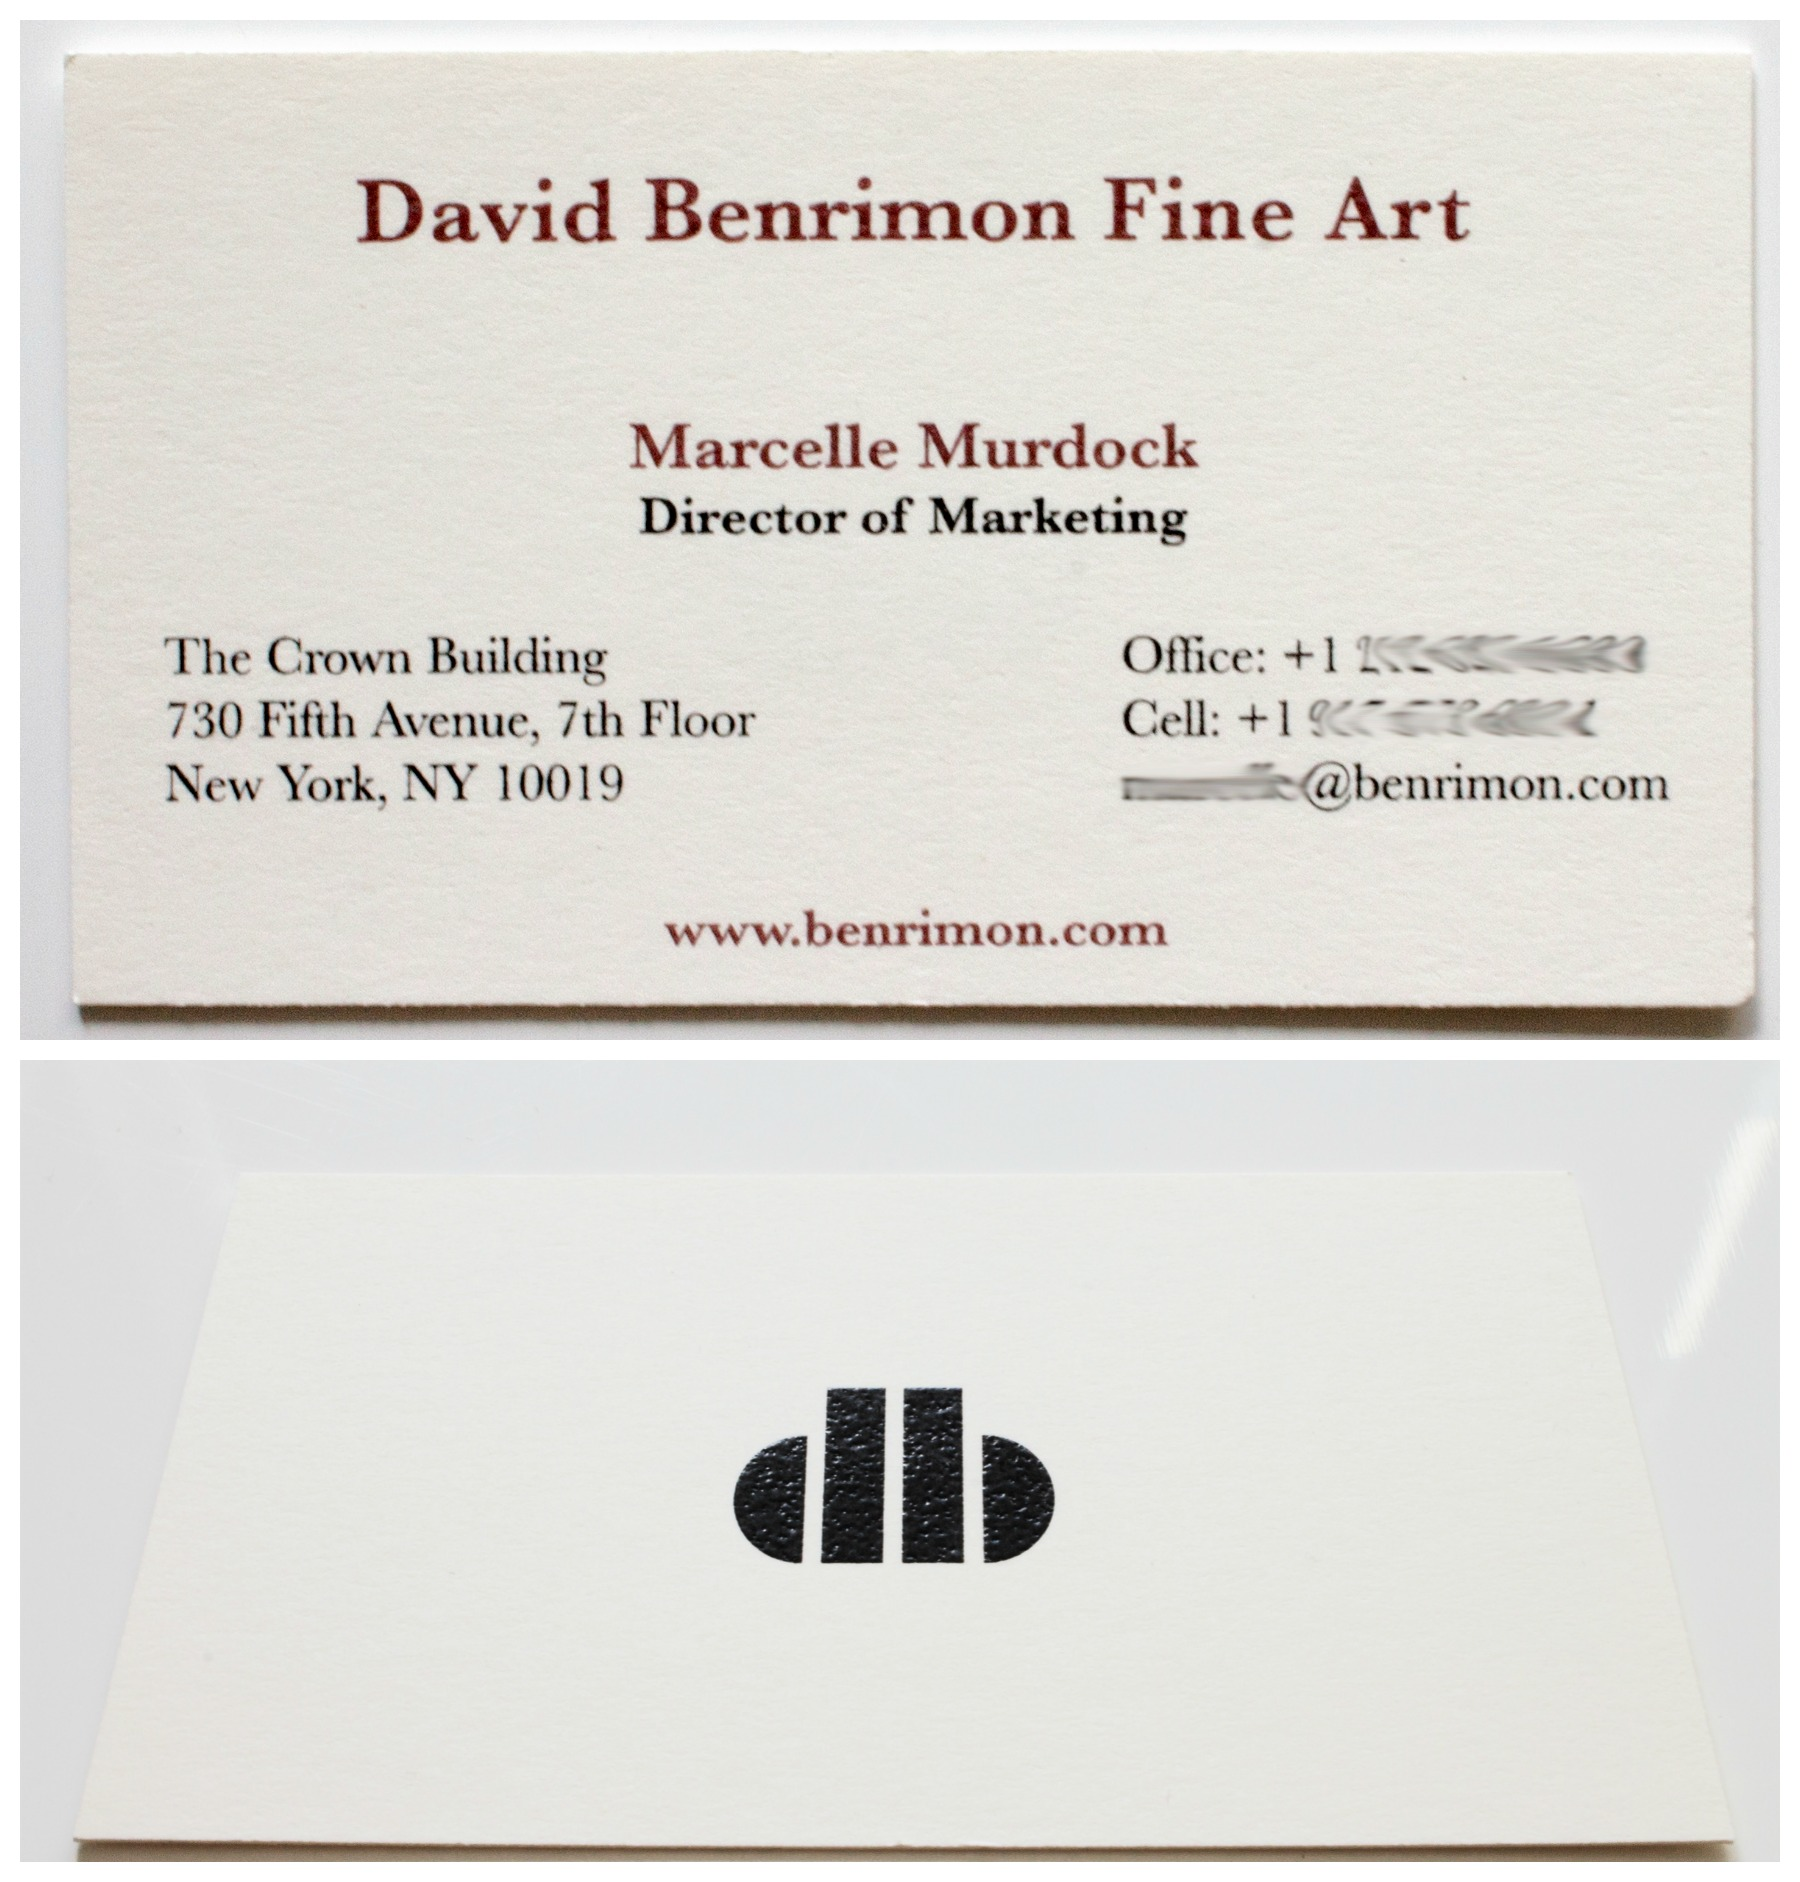 DBFA business cards